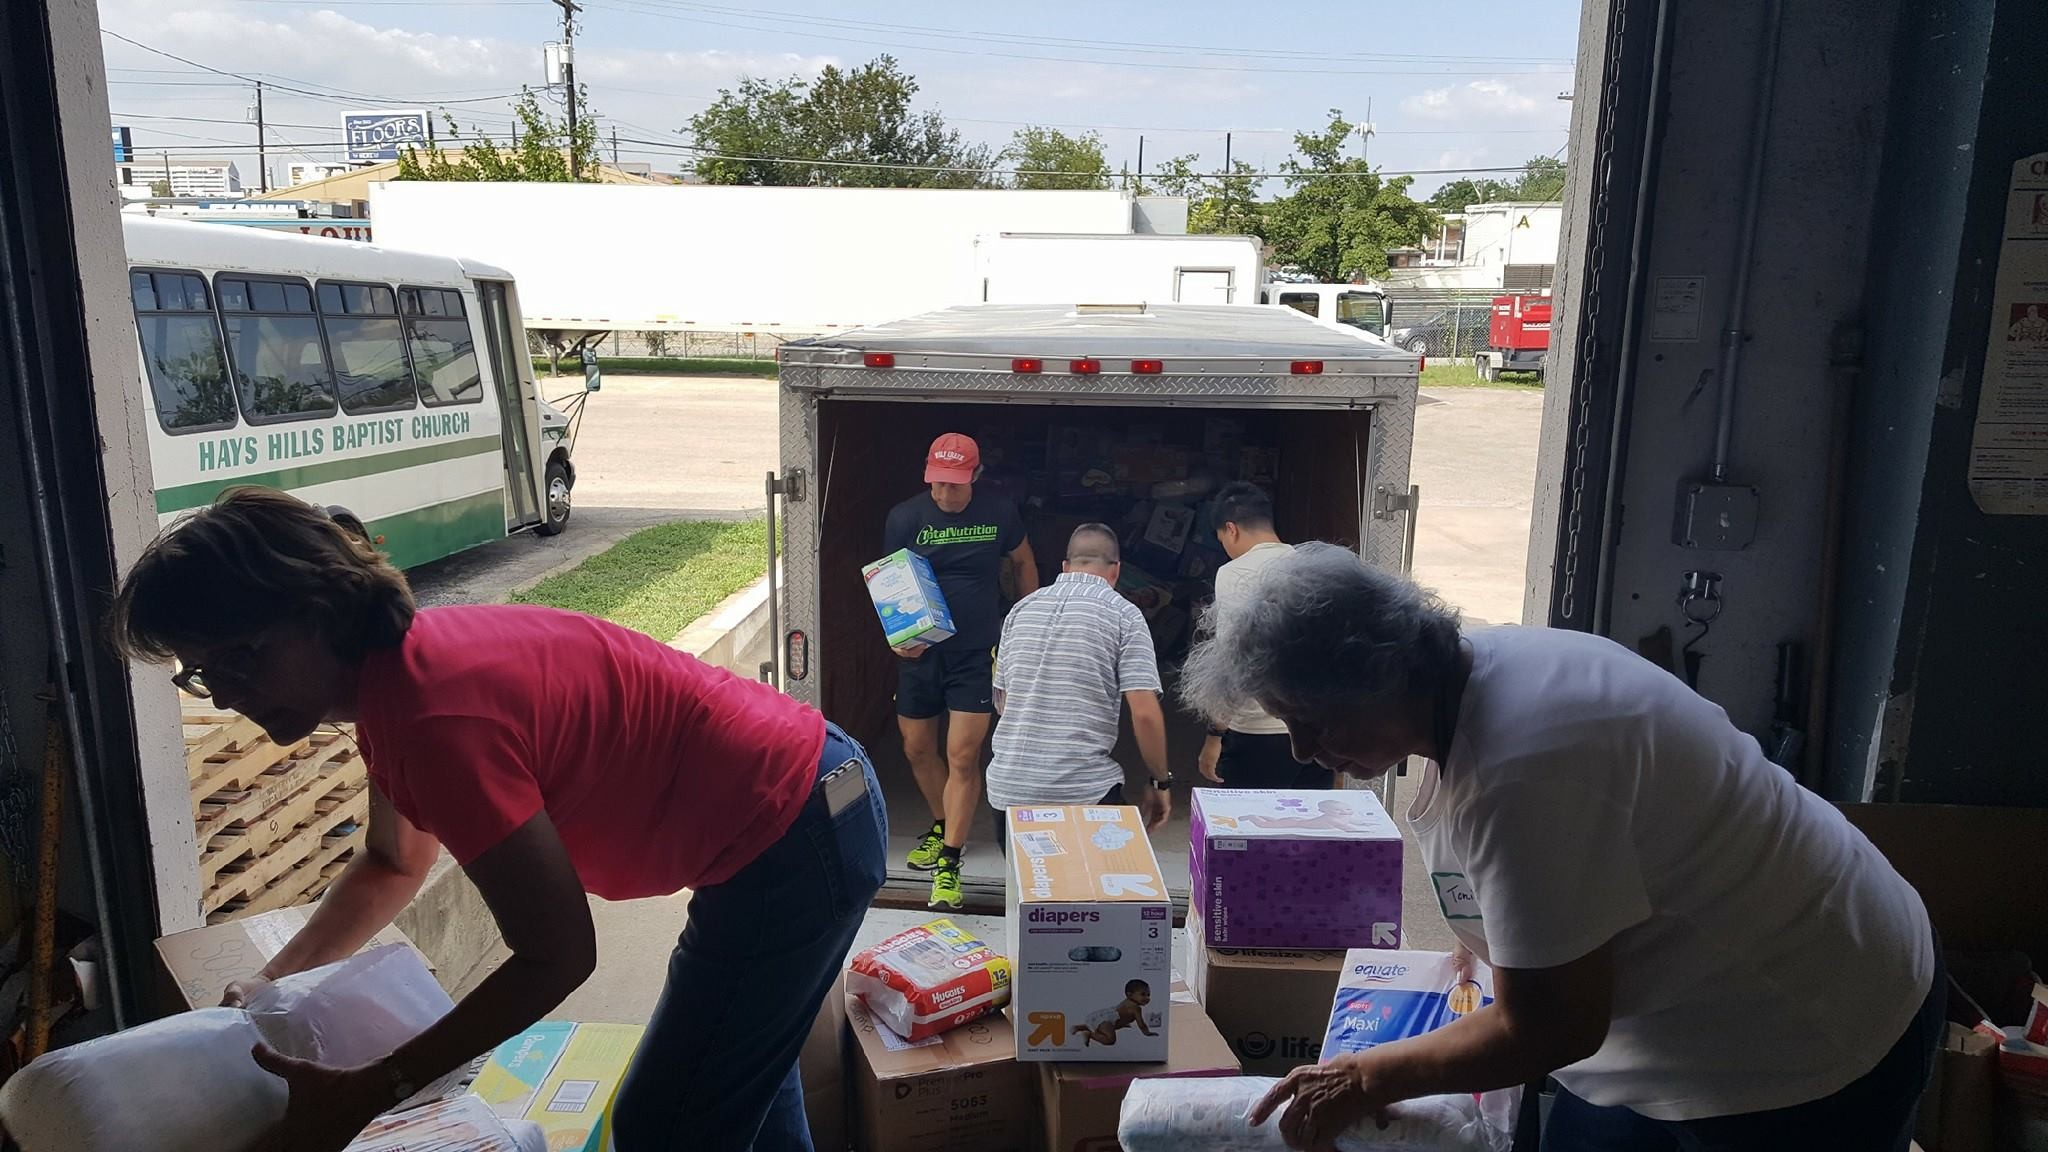 John Squires with Keller Williams Realty partnered with the Circle C Ranch HOA to deliver diapers and toiletries to help the Austin Disaster Relief Network survivor supply drive.